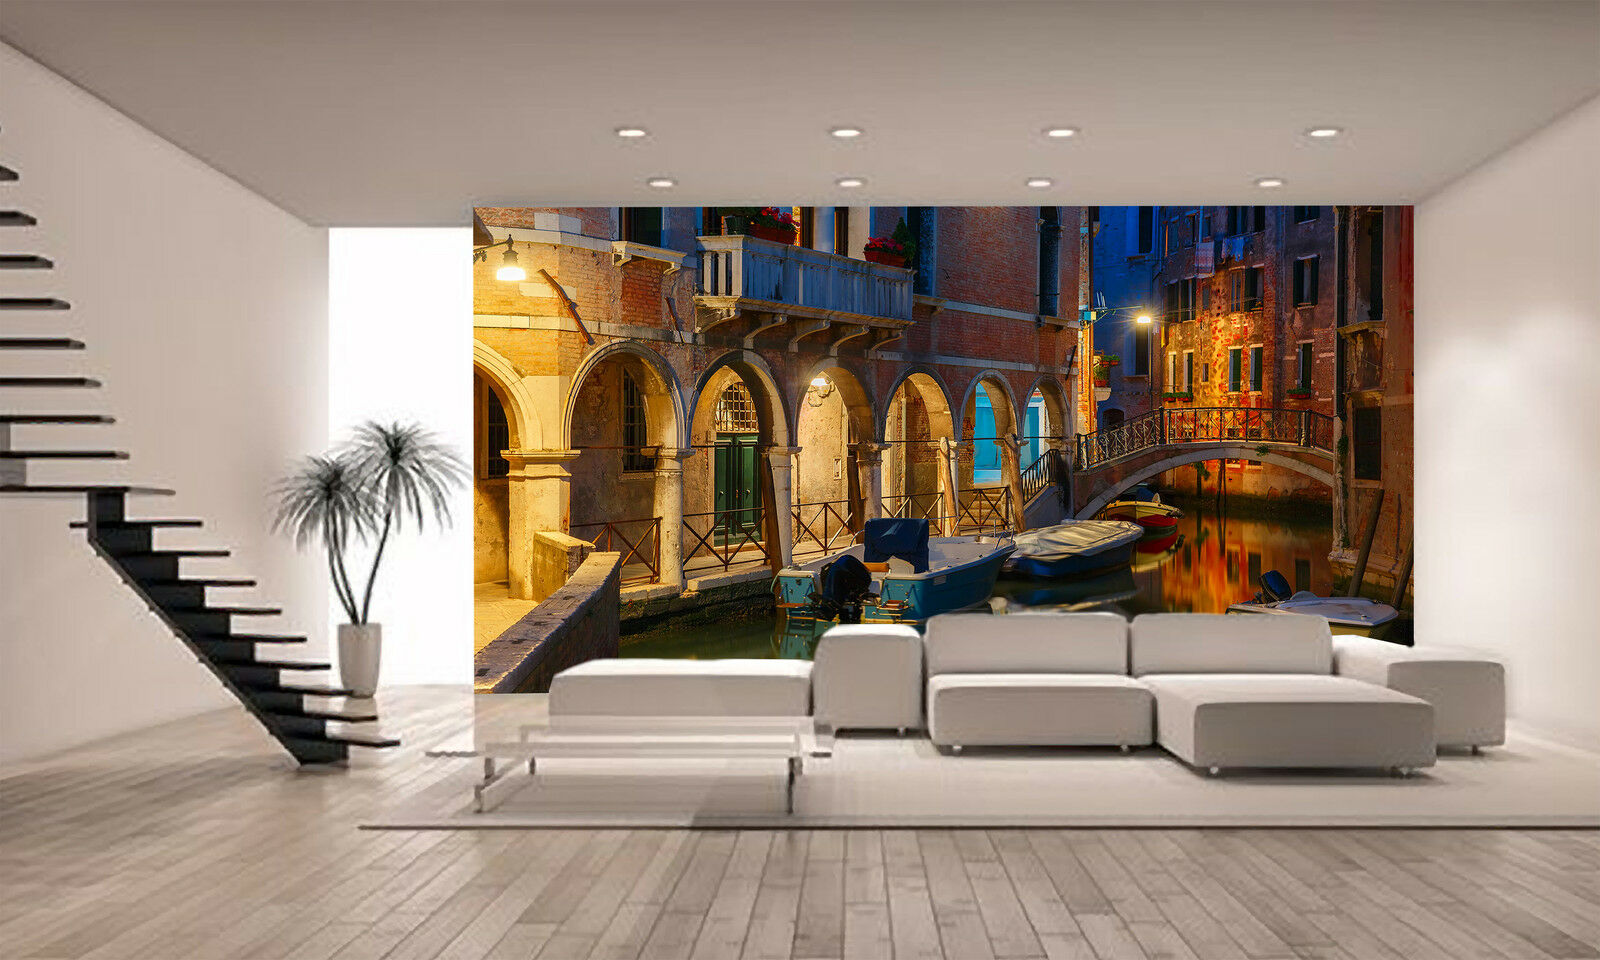 Canal and Bridge in Venice Wall Mural Photo Wallpaper GIANT DECOR Paper Poster